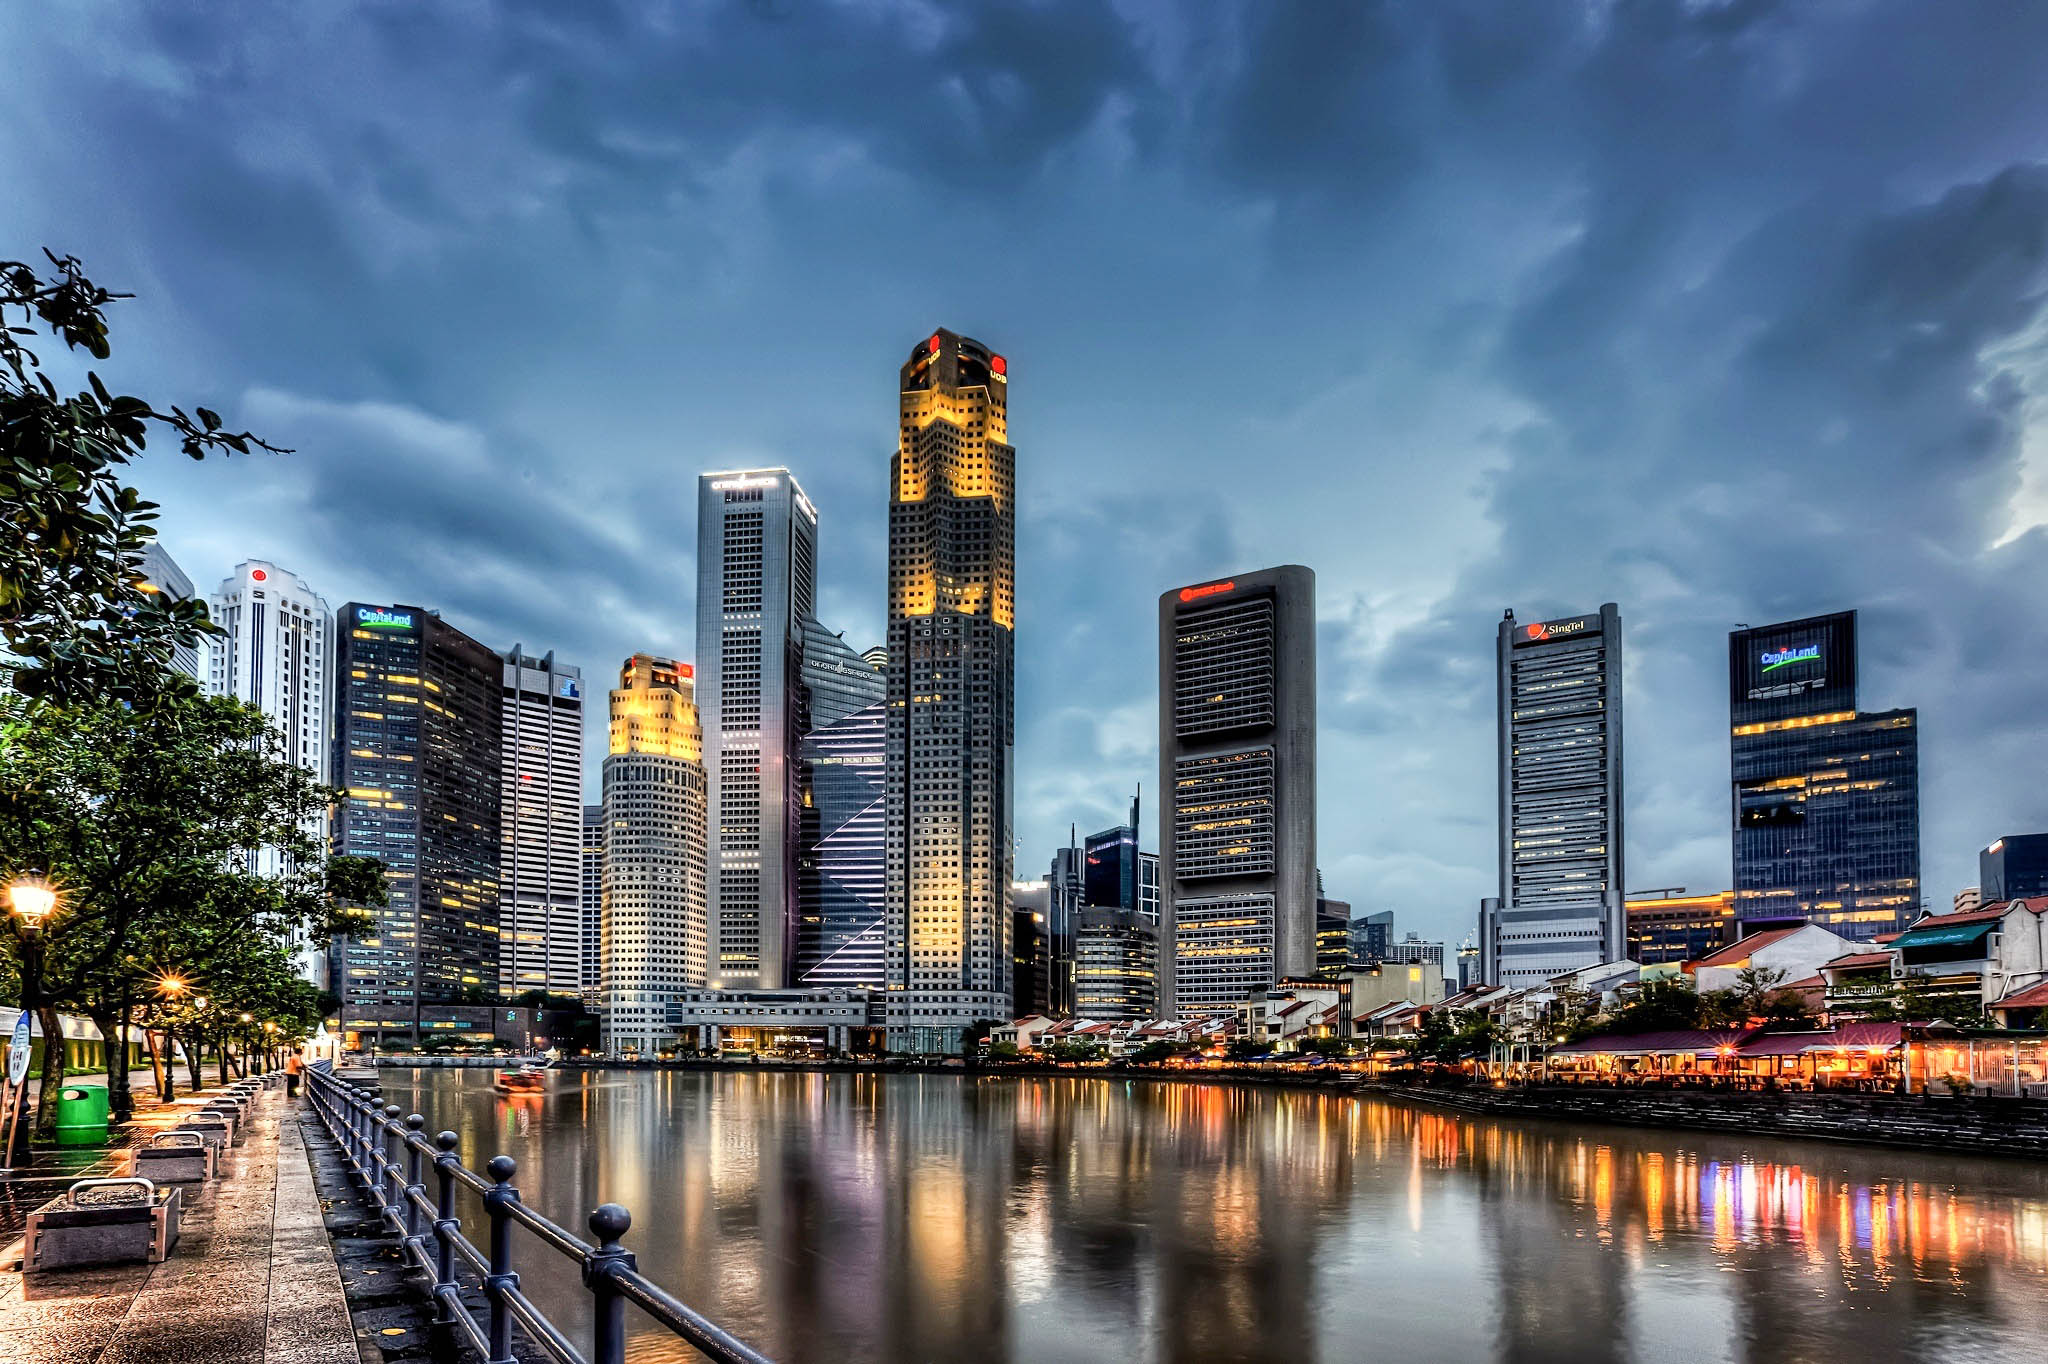 Singapore New Awesome High Definition Wallpapers 2015